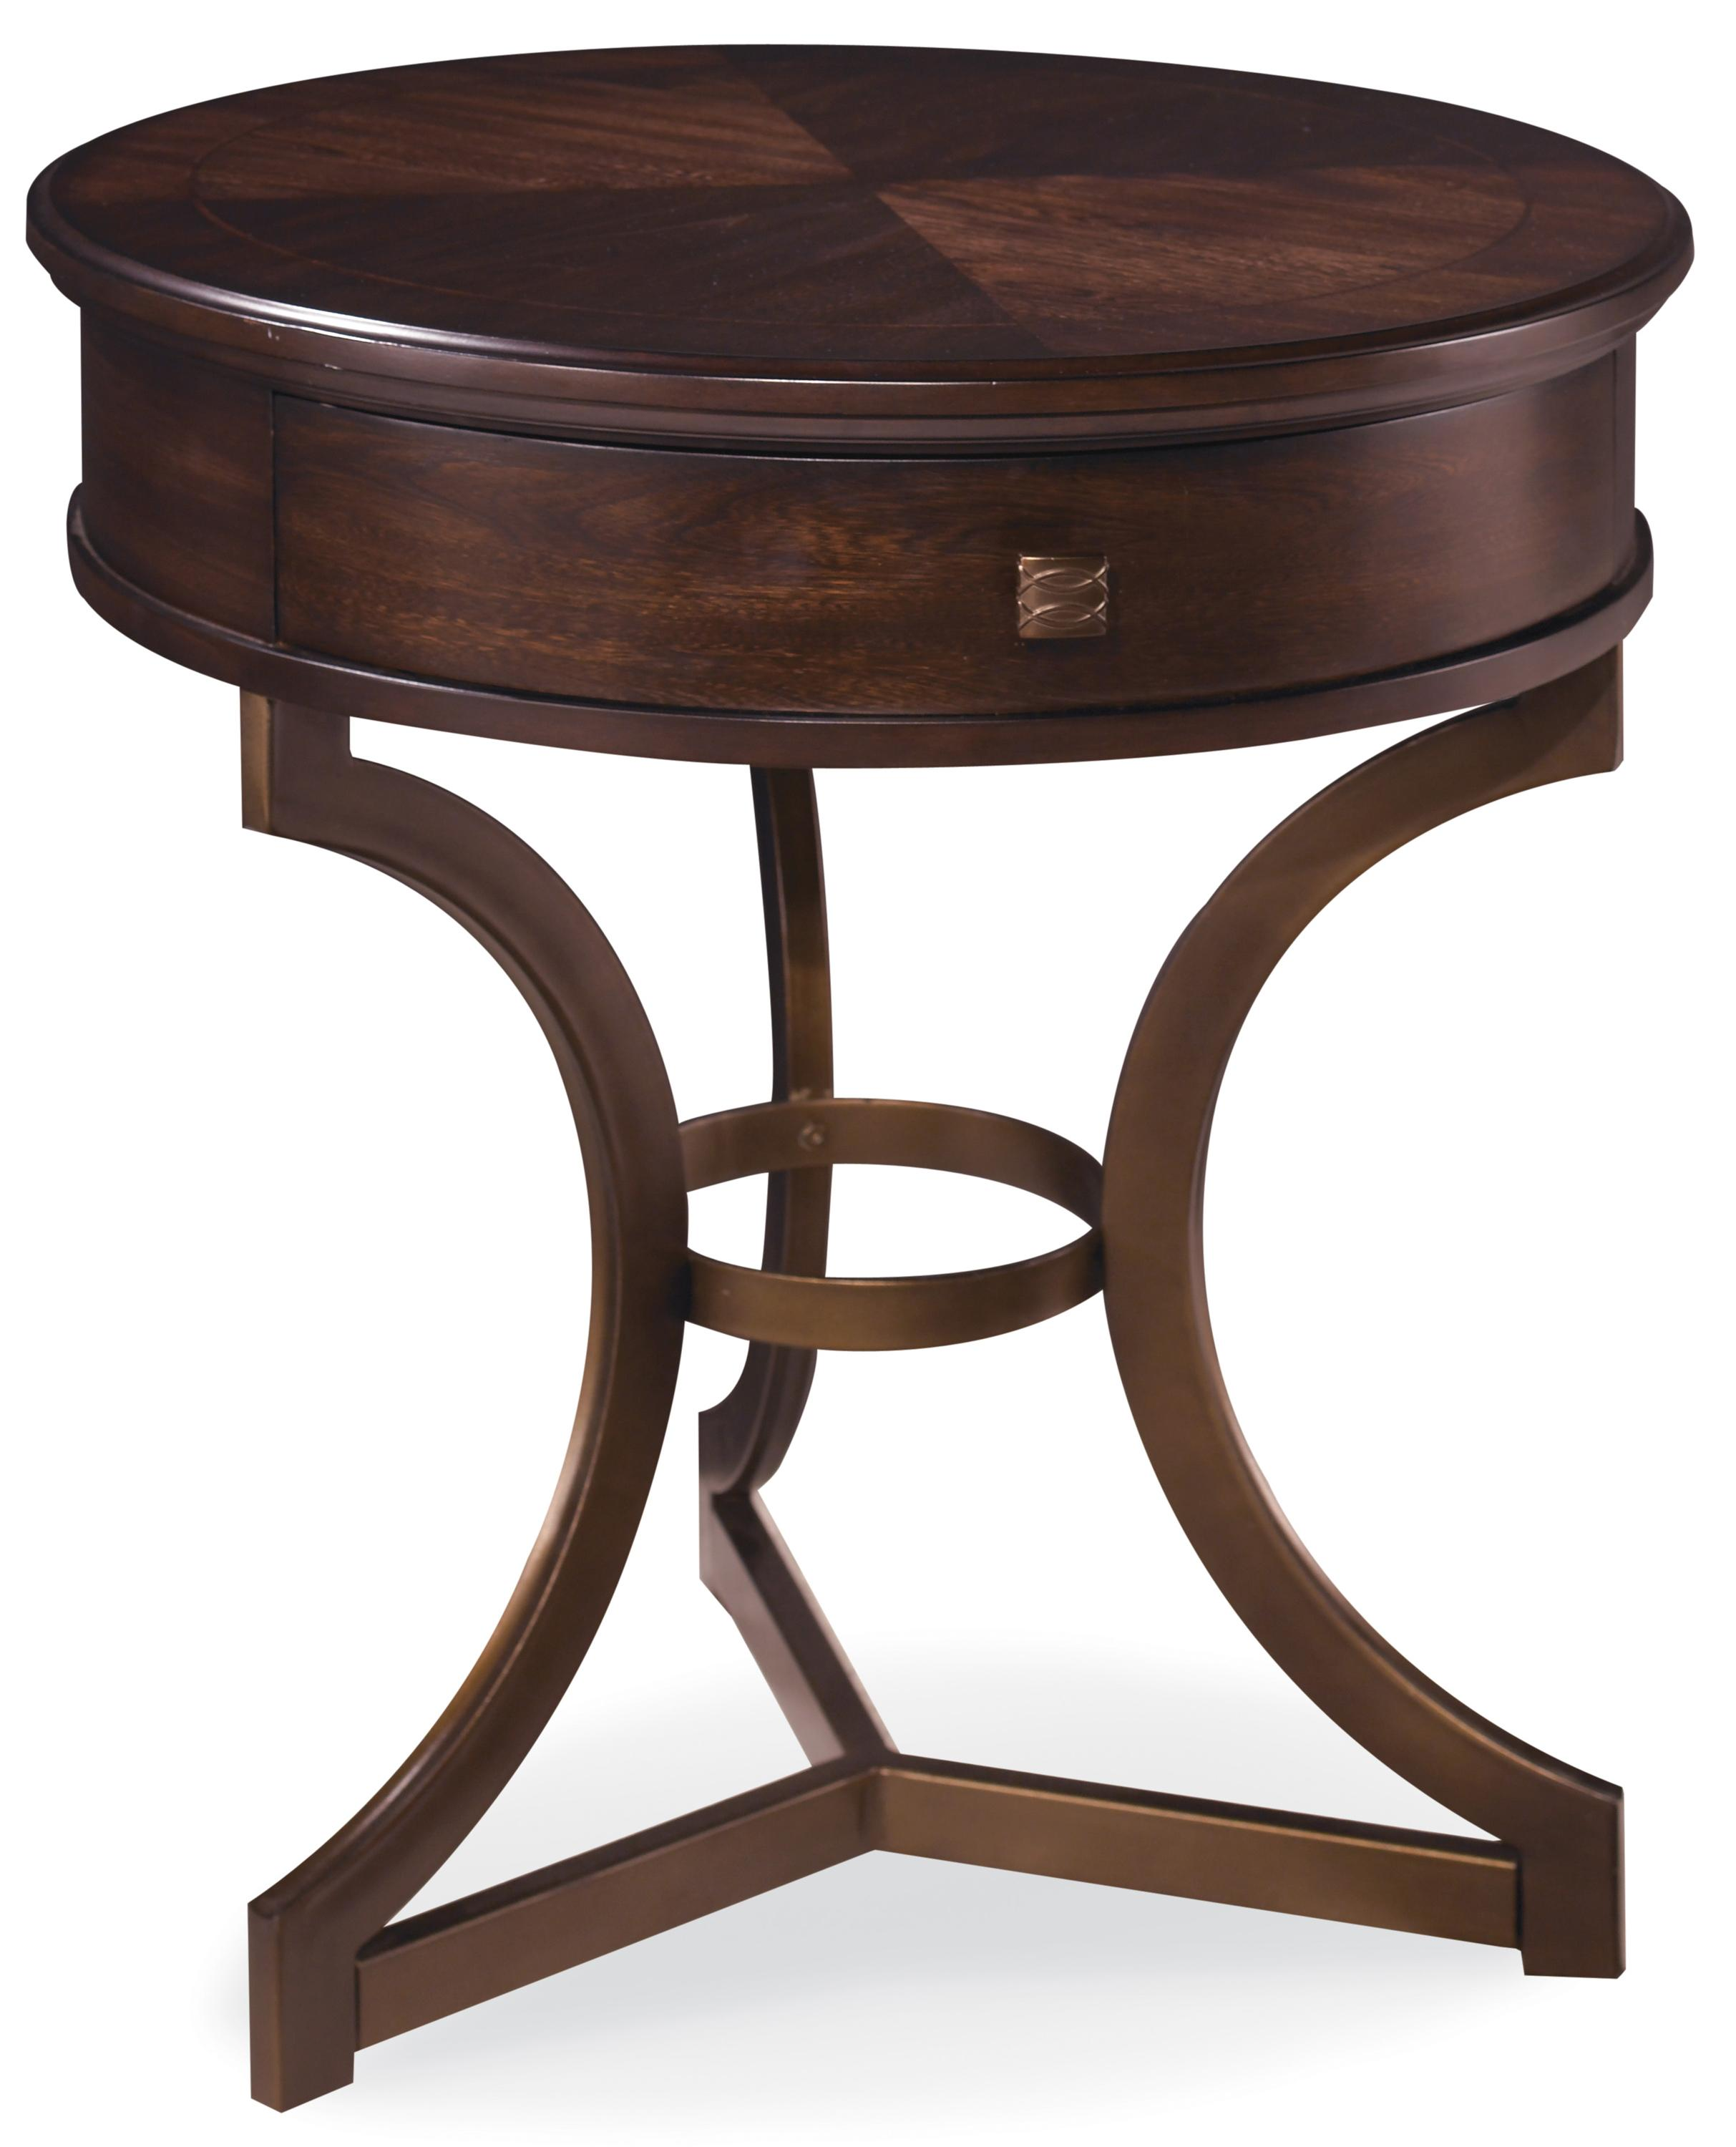 End Tables With Metal Legs A R T Furniture Inc Intrigue Round End Table With Curved